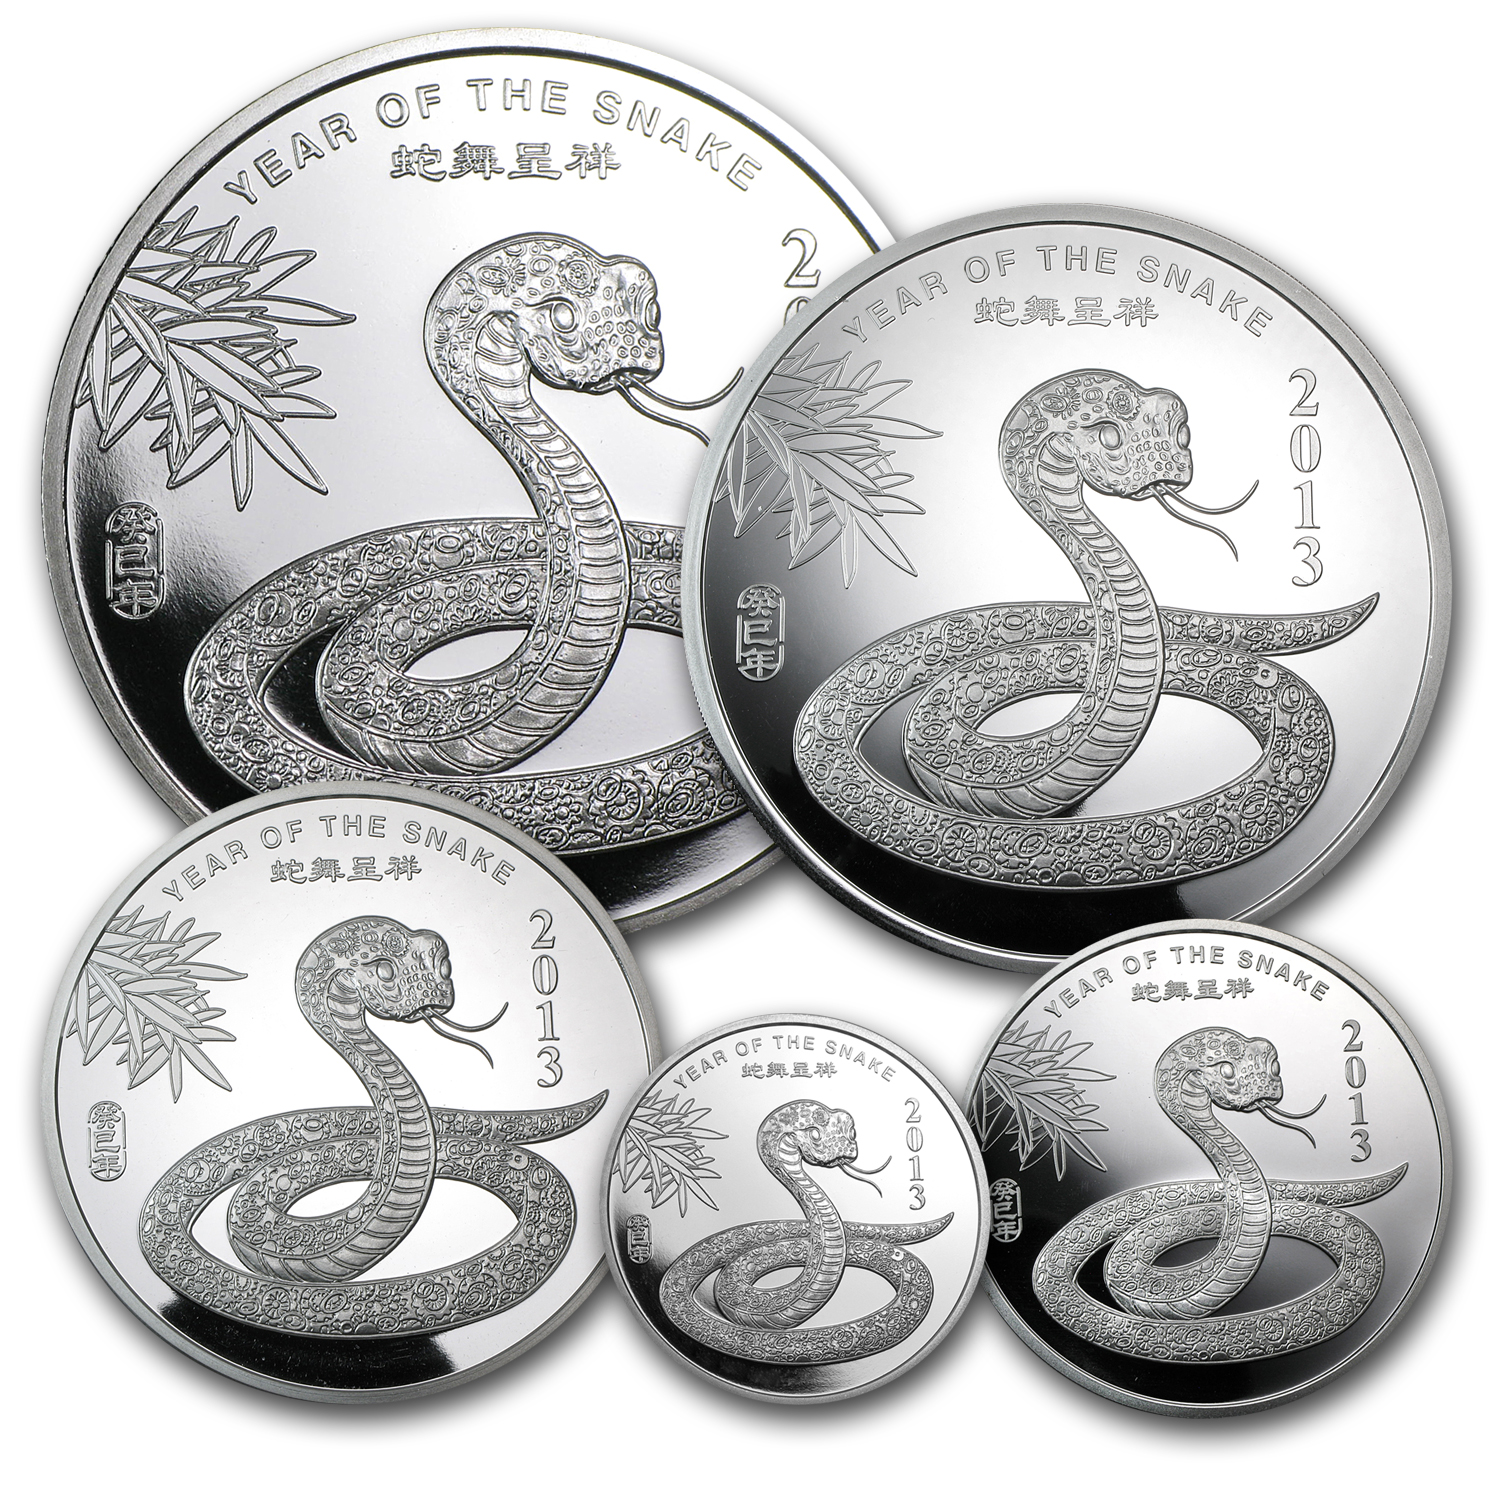 5-Coin Silver Round - APMEX Set (2013 Year of the Snake)